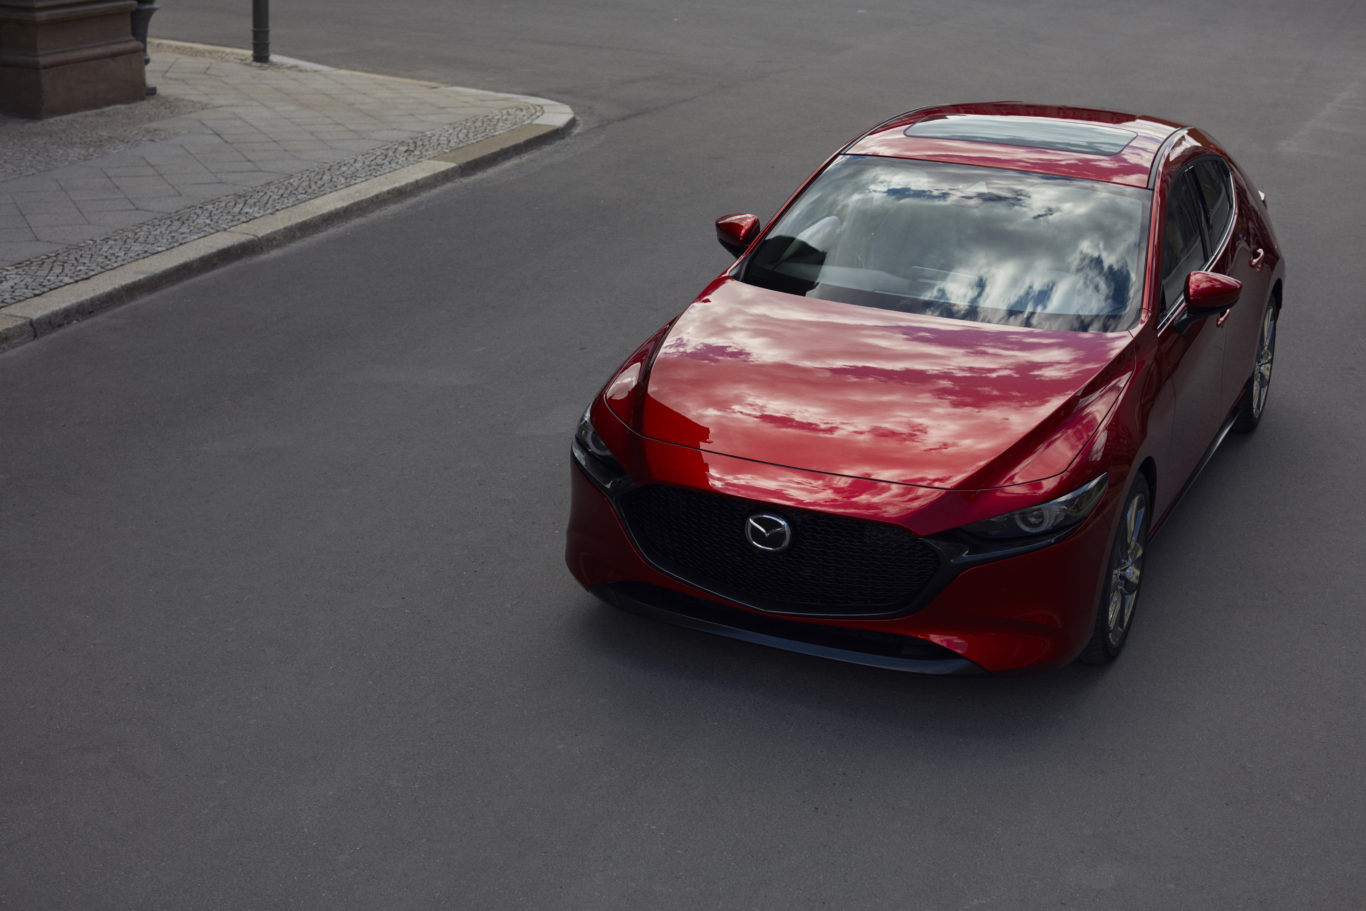 The new Mazda 3 represents a stylish update of one of Mazda's most popular models